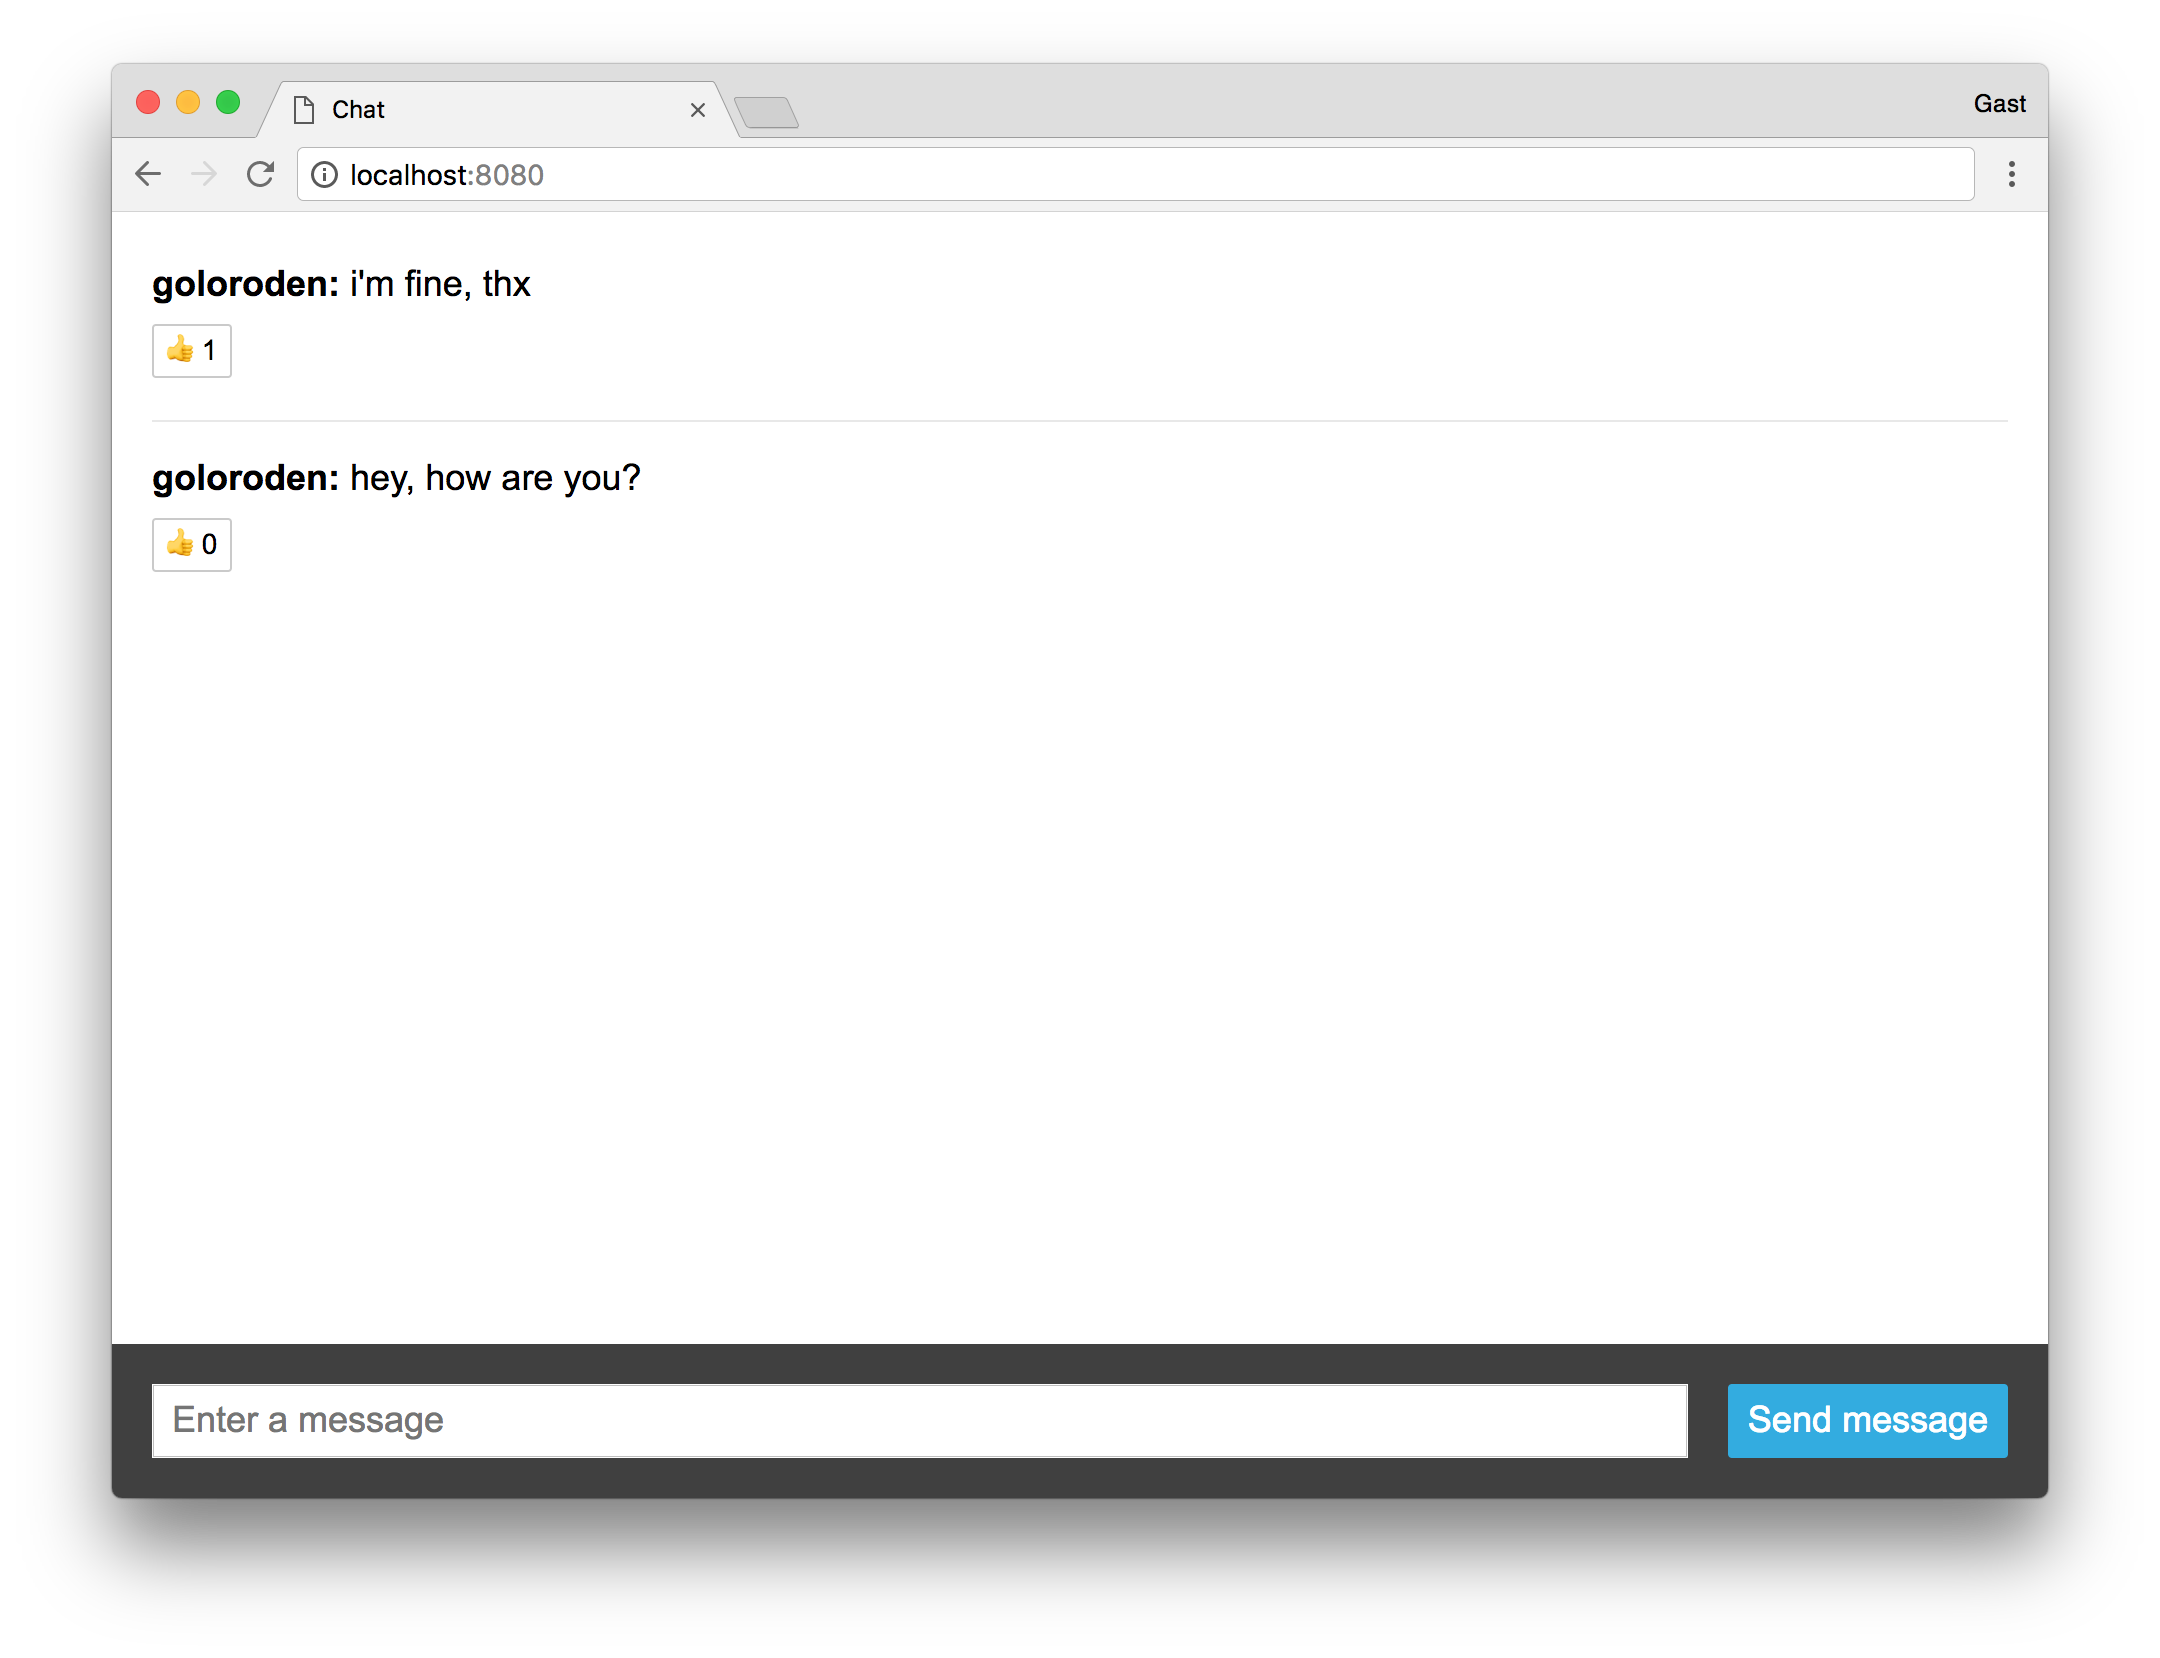 Running the chat with authentication